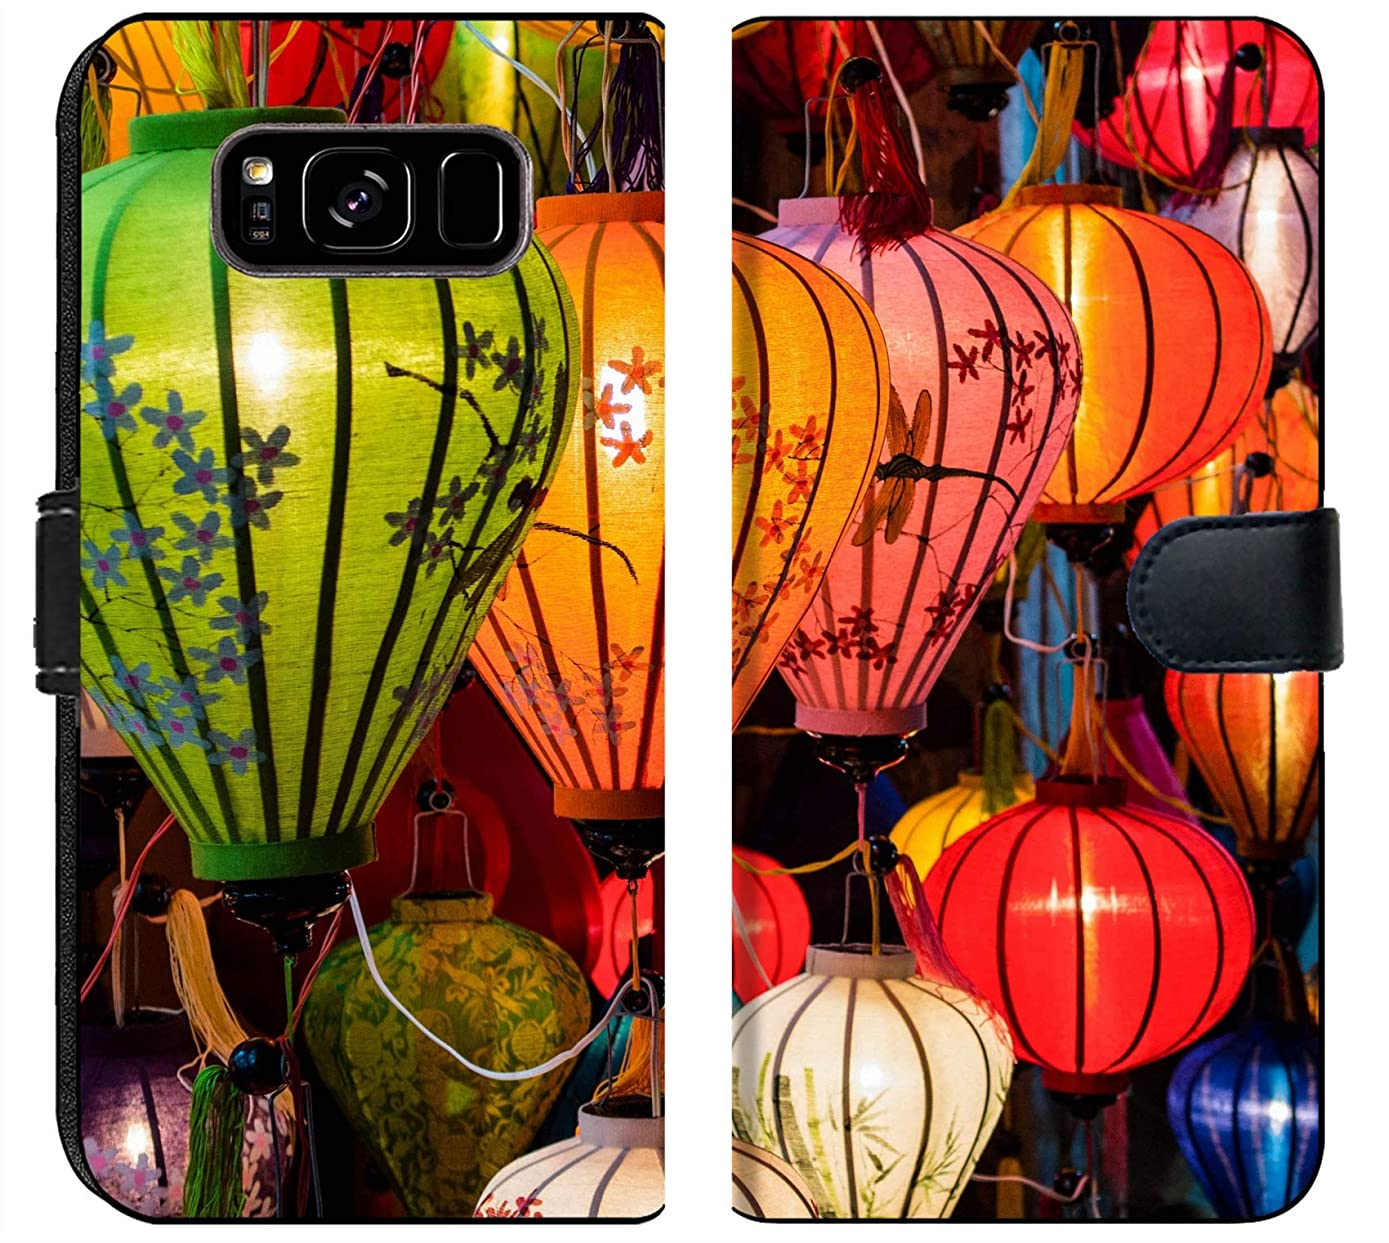 Samsung Galaxy S8 Plus Flip Fabric Wallet Case Image ID: 31089698 Traditional Lamps in Old Town Hoi an Central Vietnam